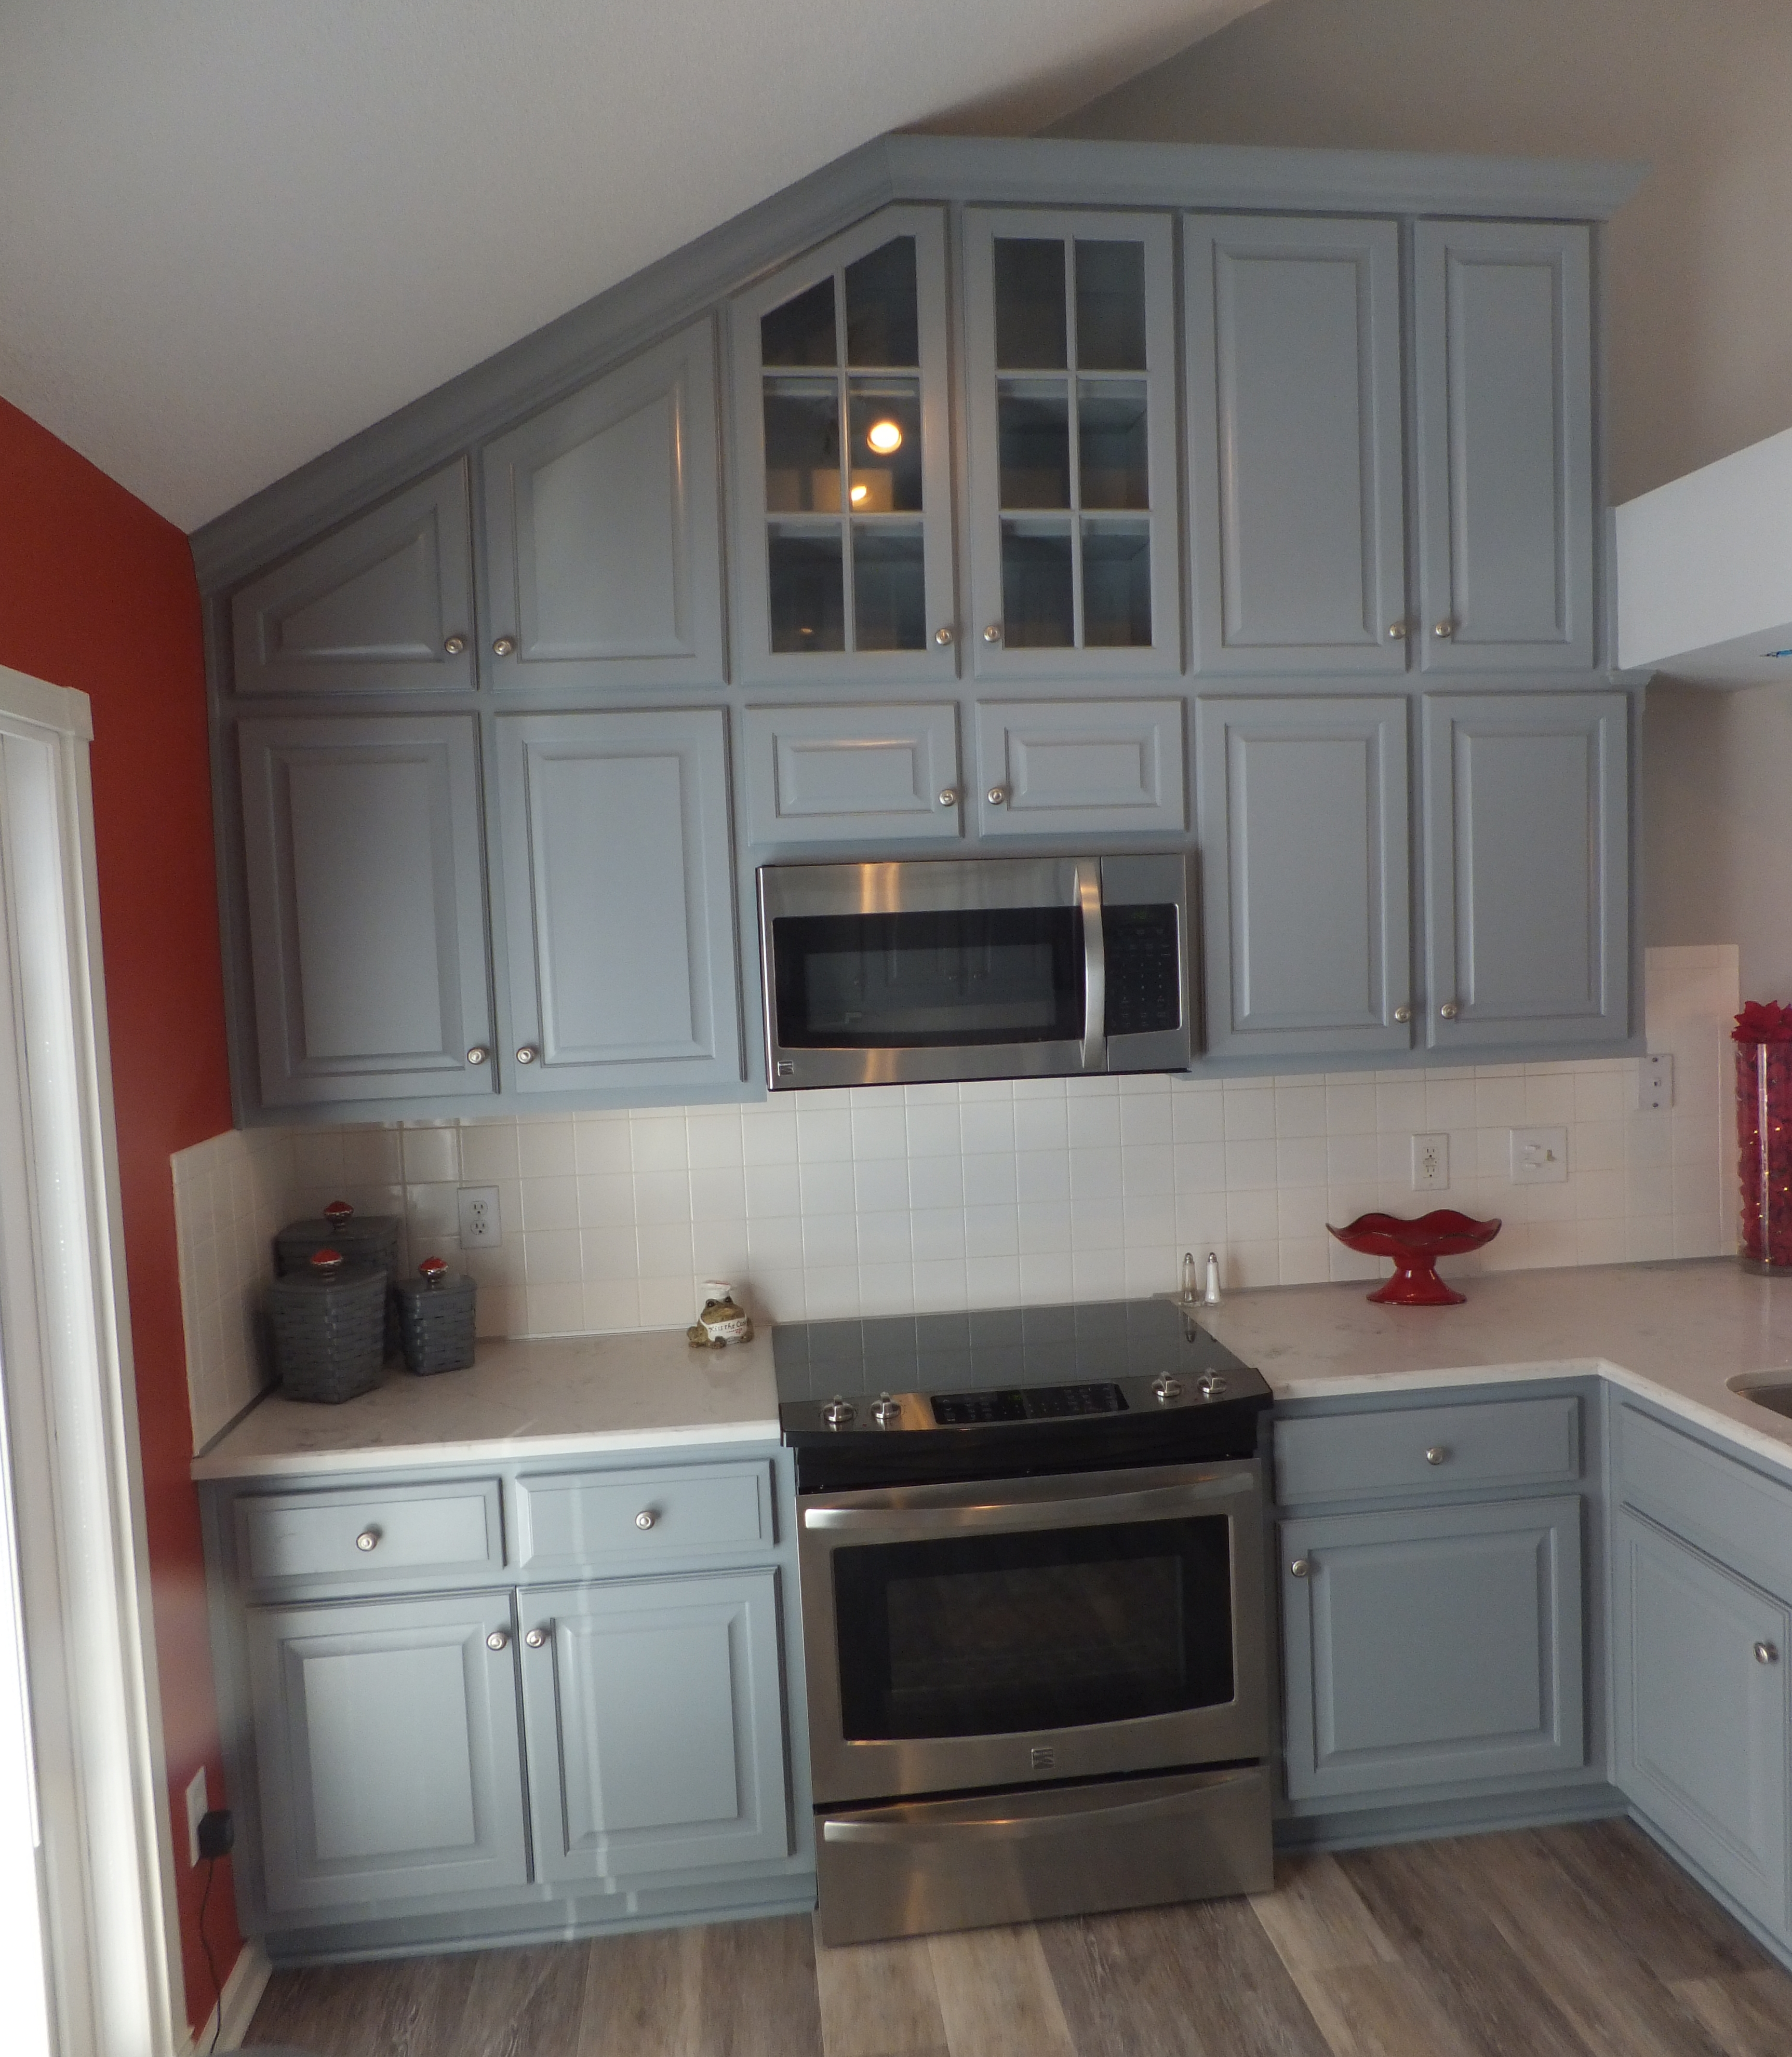 Kitchen Cabinets Kansas City: Cabinet Refacing Gallery